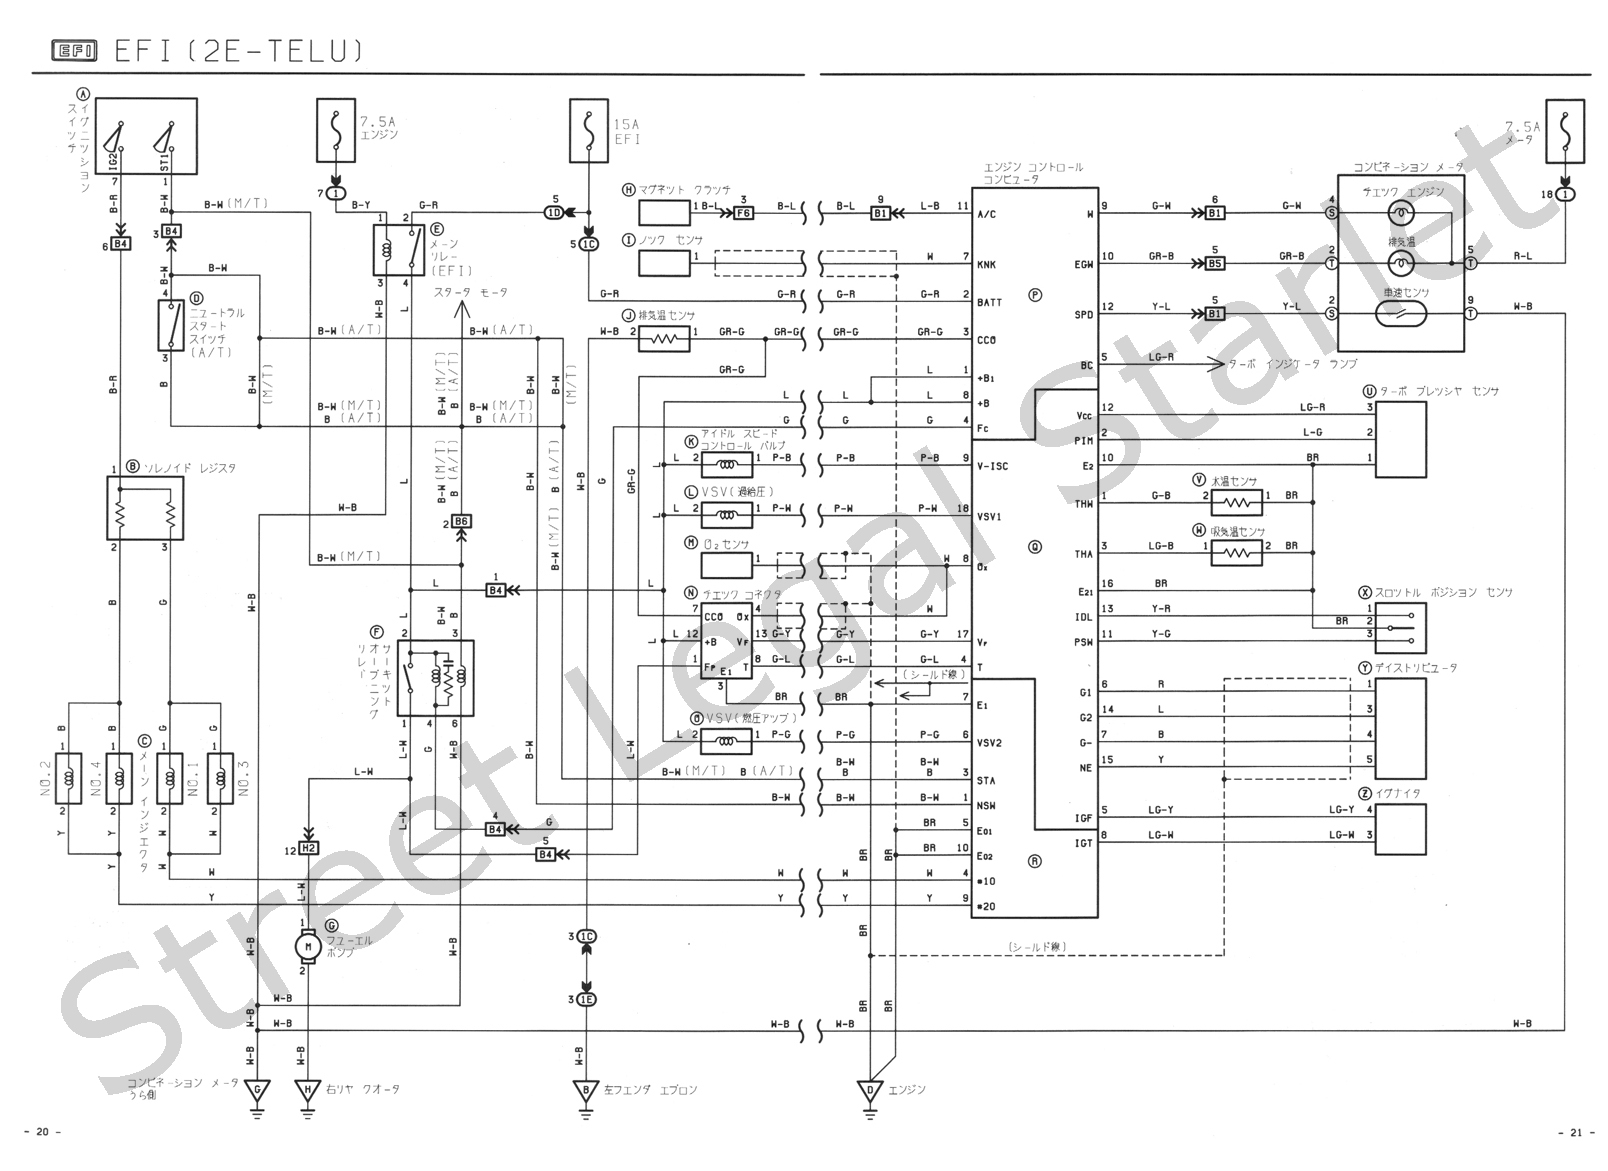 Help Filling Blanks Rx7 Wiring Diagram 804336 together with Oil Flow Direction 402107 moreover New Patents Mazda Rotary Released 209208 likewise Mazda Rx 8 Engine Diagram in addition Where Put Oil Temp Oil Pressure Water Temp Boost Pressure Sensors 1094721. on mazda rx 7 rotary engine diagram